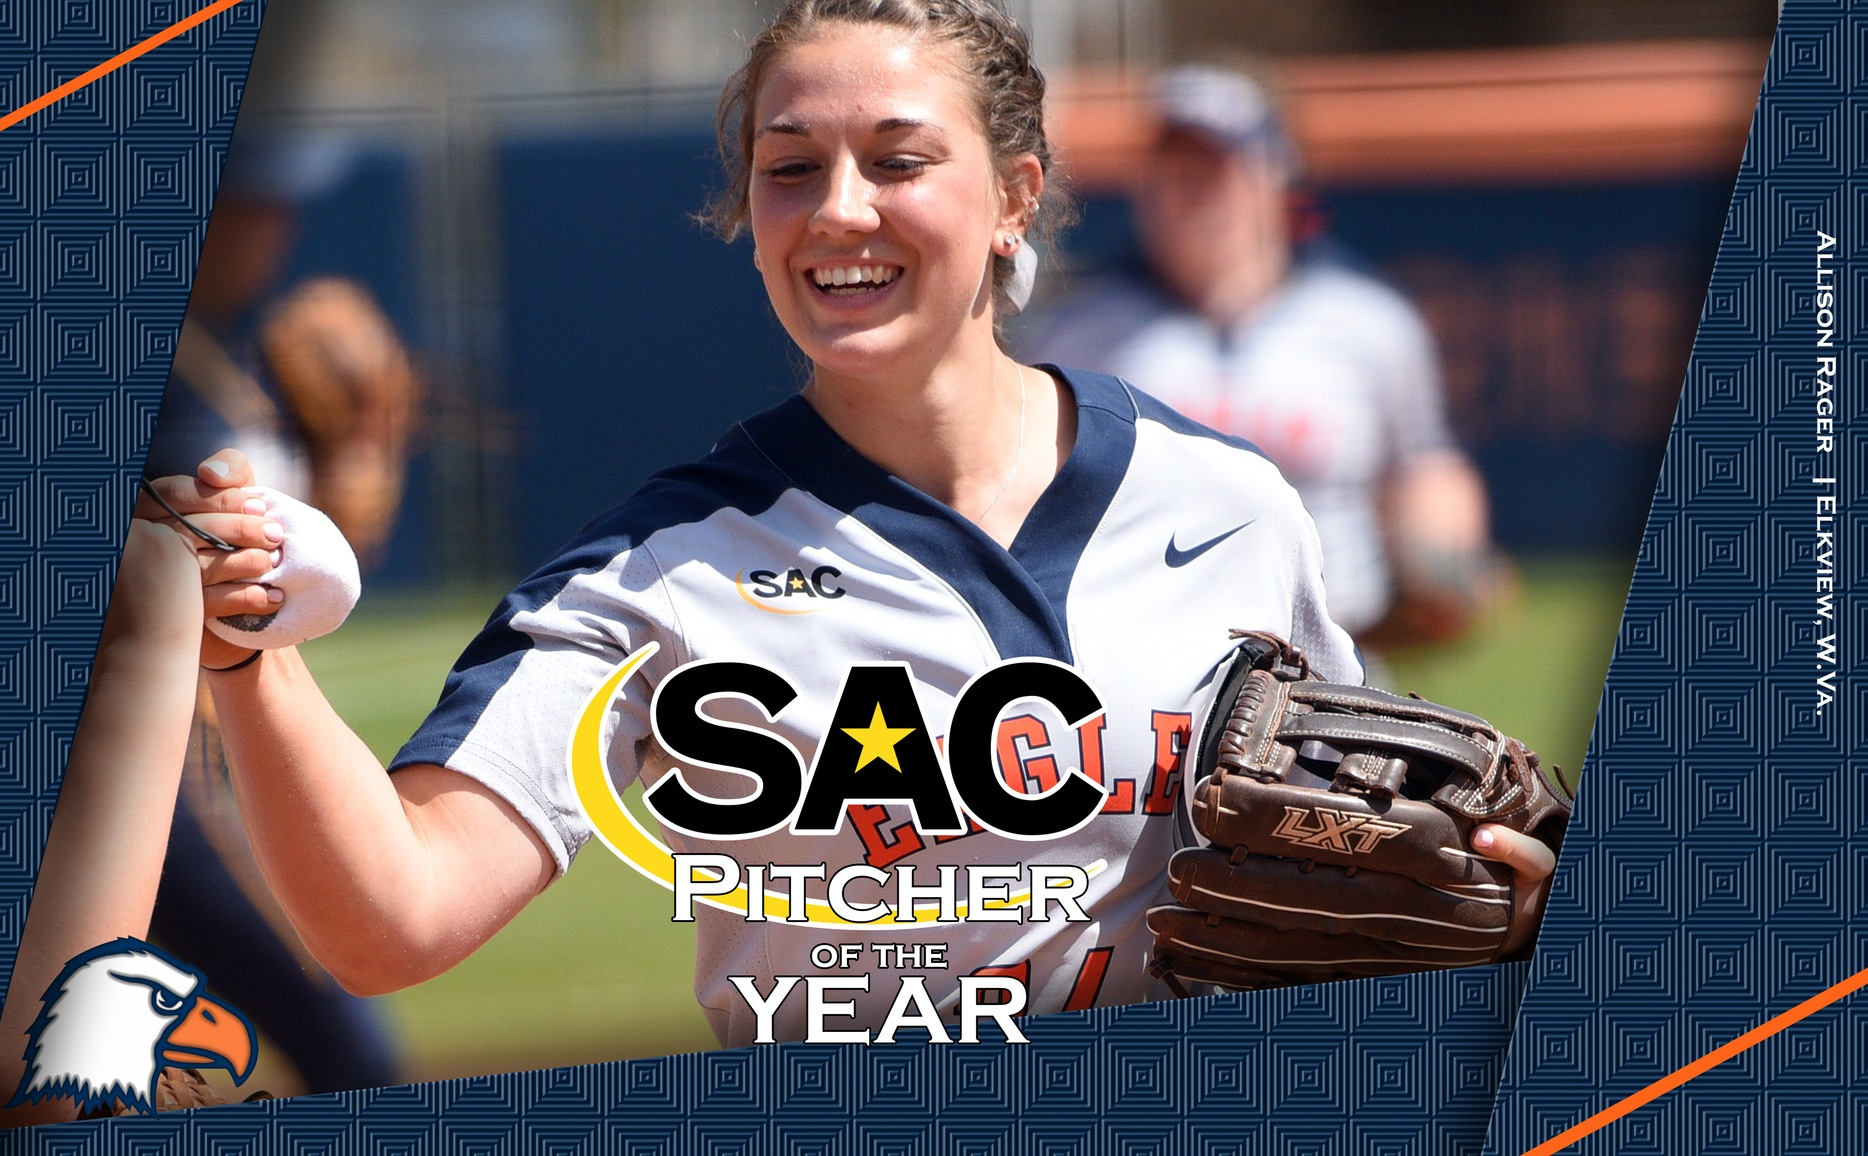 Rager named Pitcher of the Year, four Eagles receive All-SAC laurels